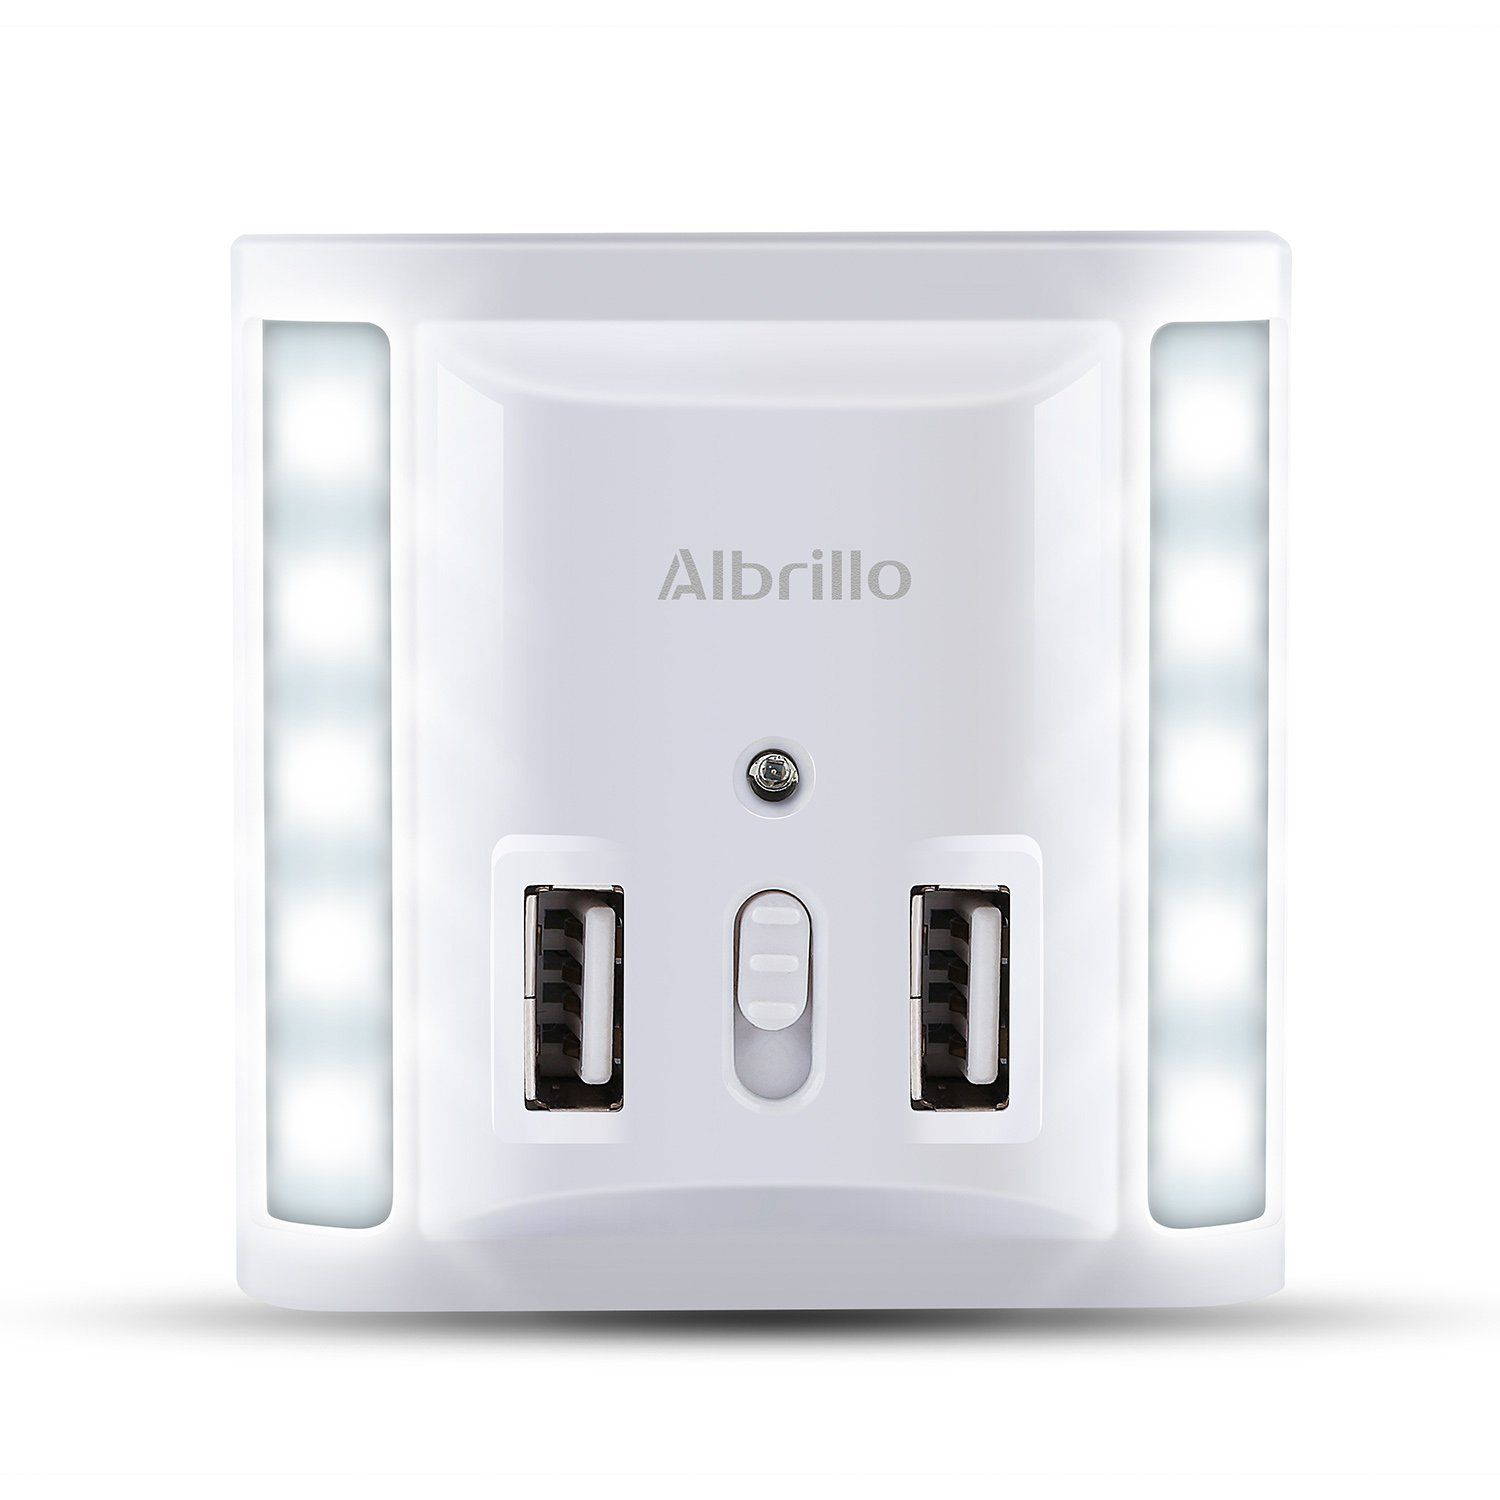 Albrillo Dimmable Night Light Dusk to Dawn Sensor Dual USB Wall Plate Charger - - Amazon.com